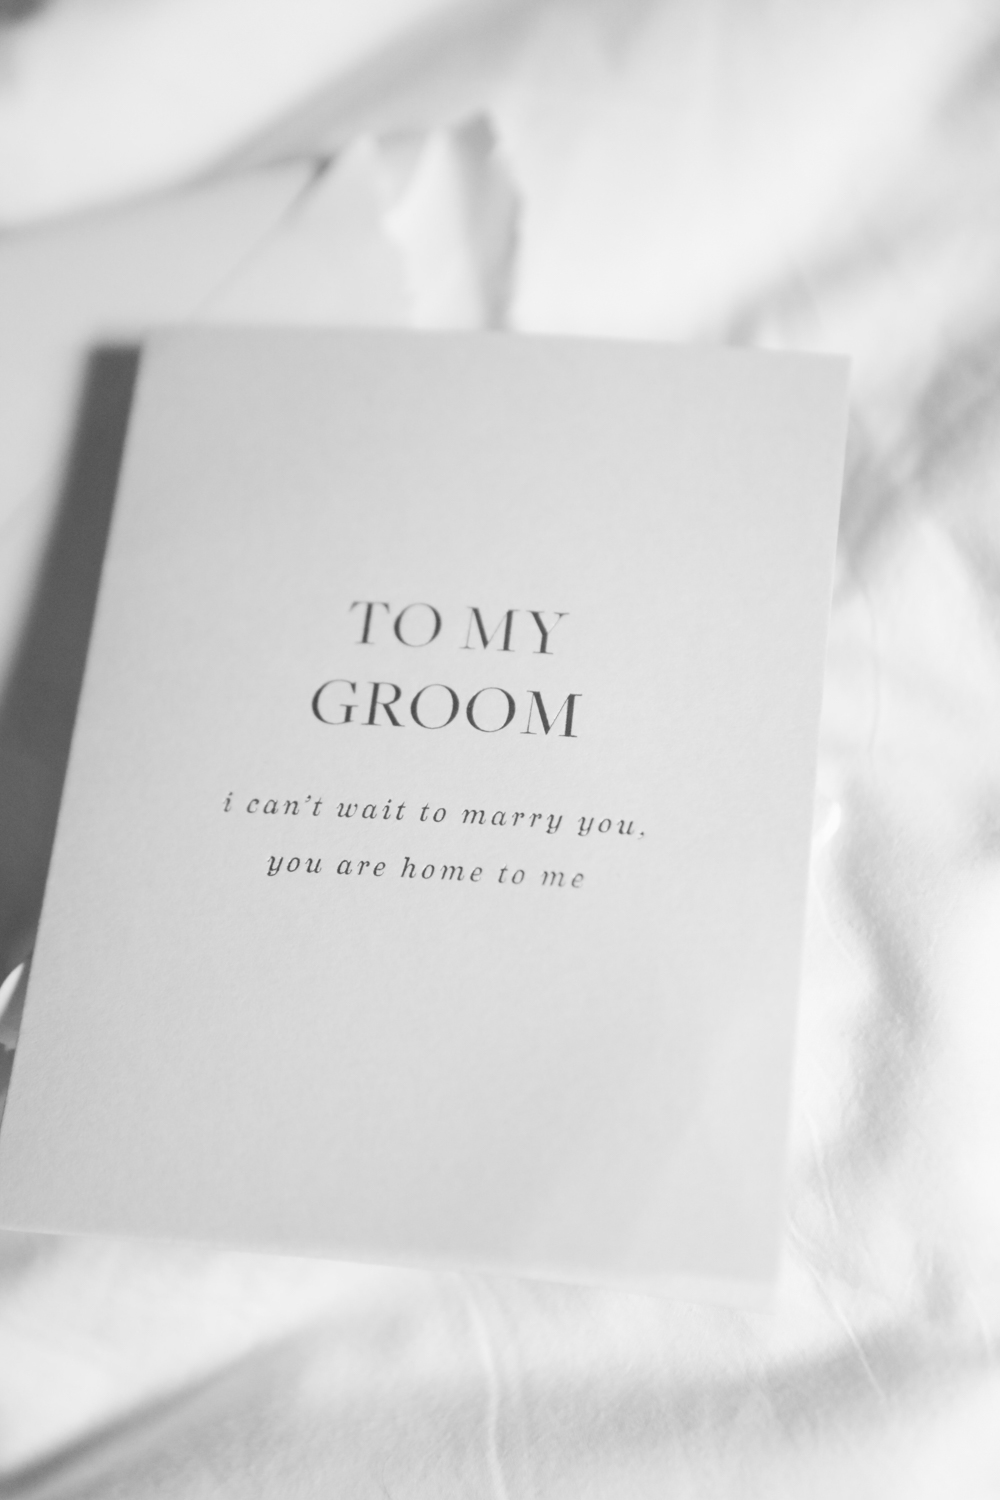 To My Groom: I can't wait to marry you, you are home to me. A card given to the groom on the morning of his wedding.